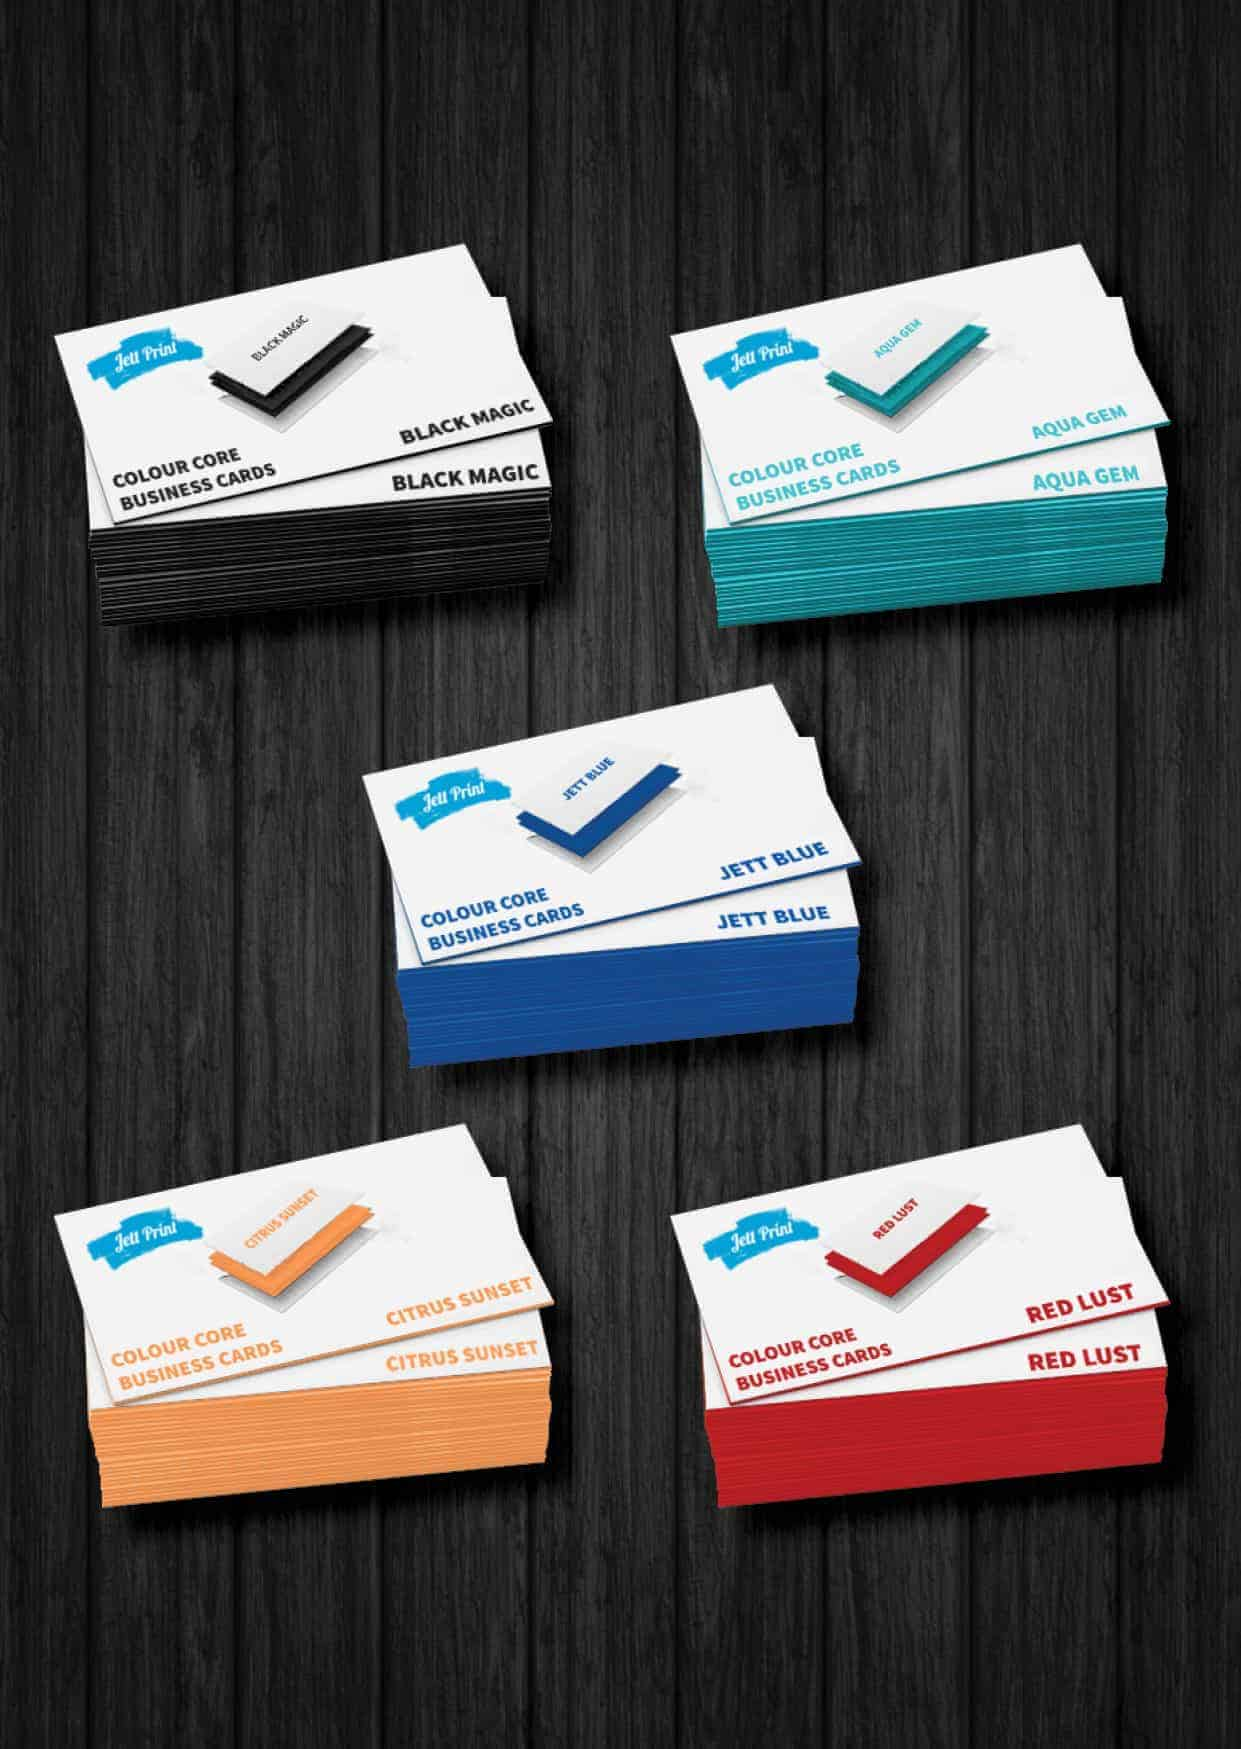 Colour core business cards be bold be noticed jett print encore colour core business cards reheart Image collections